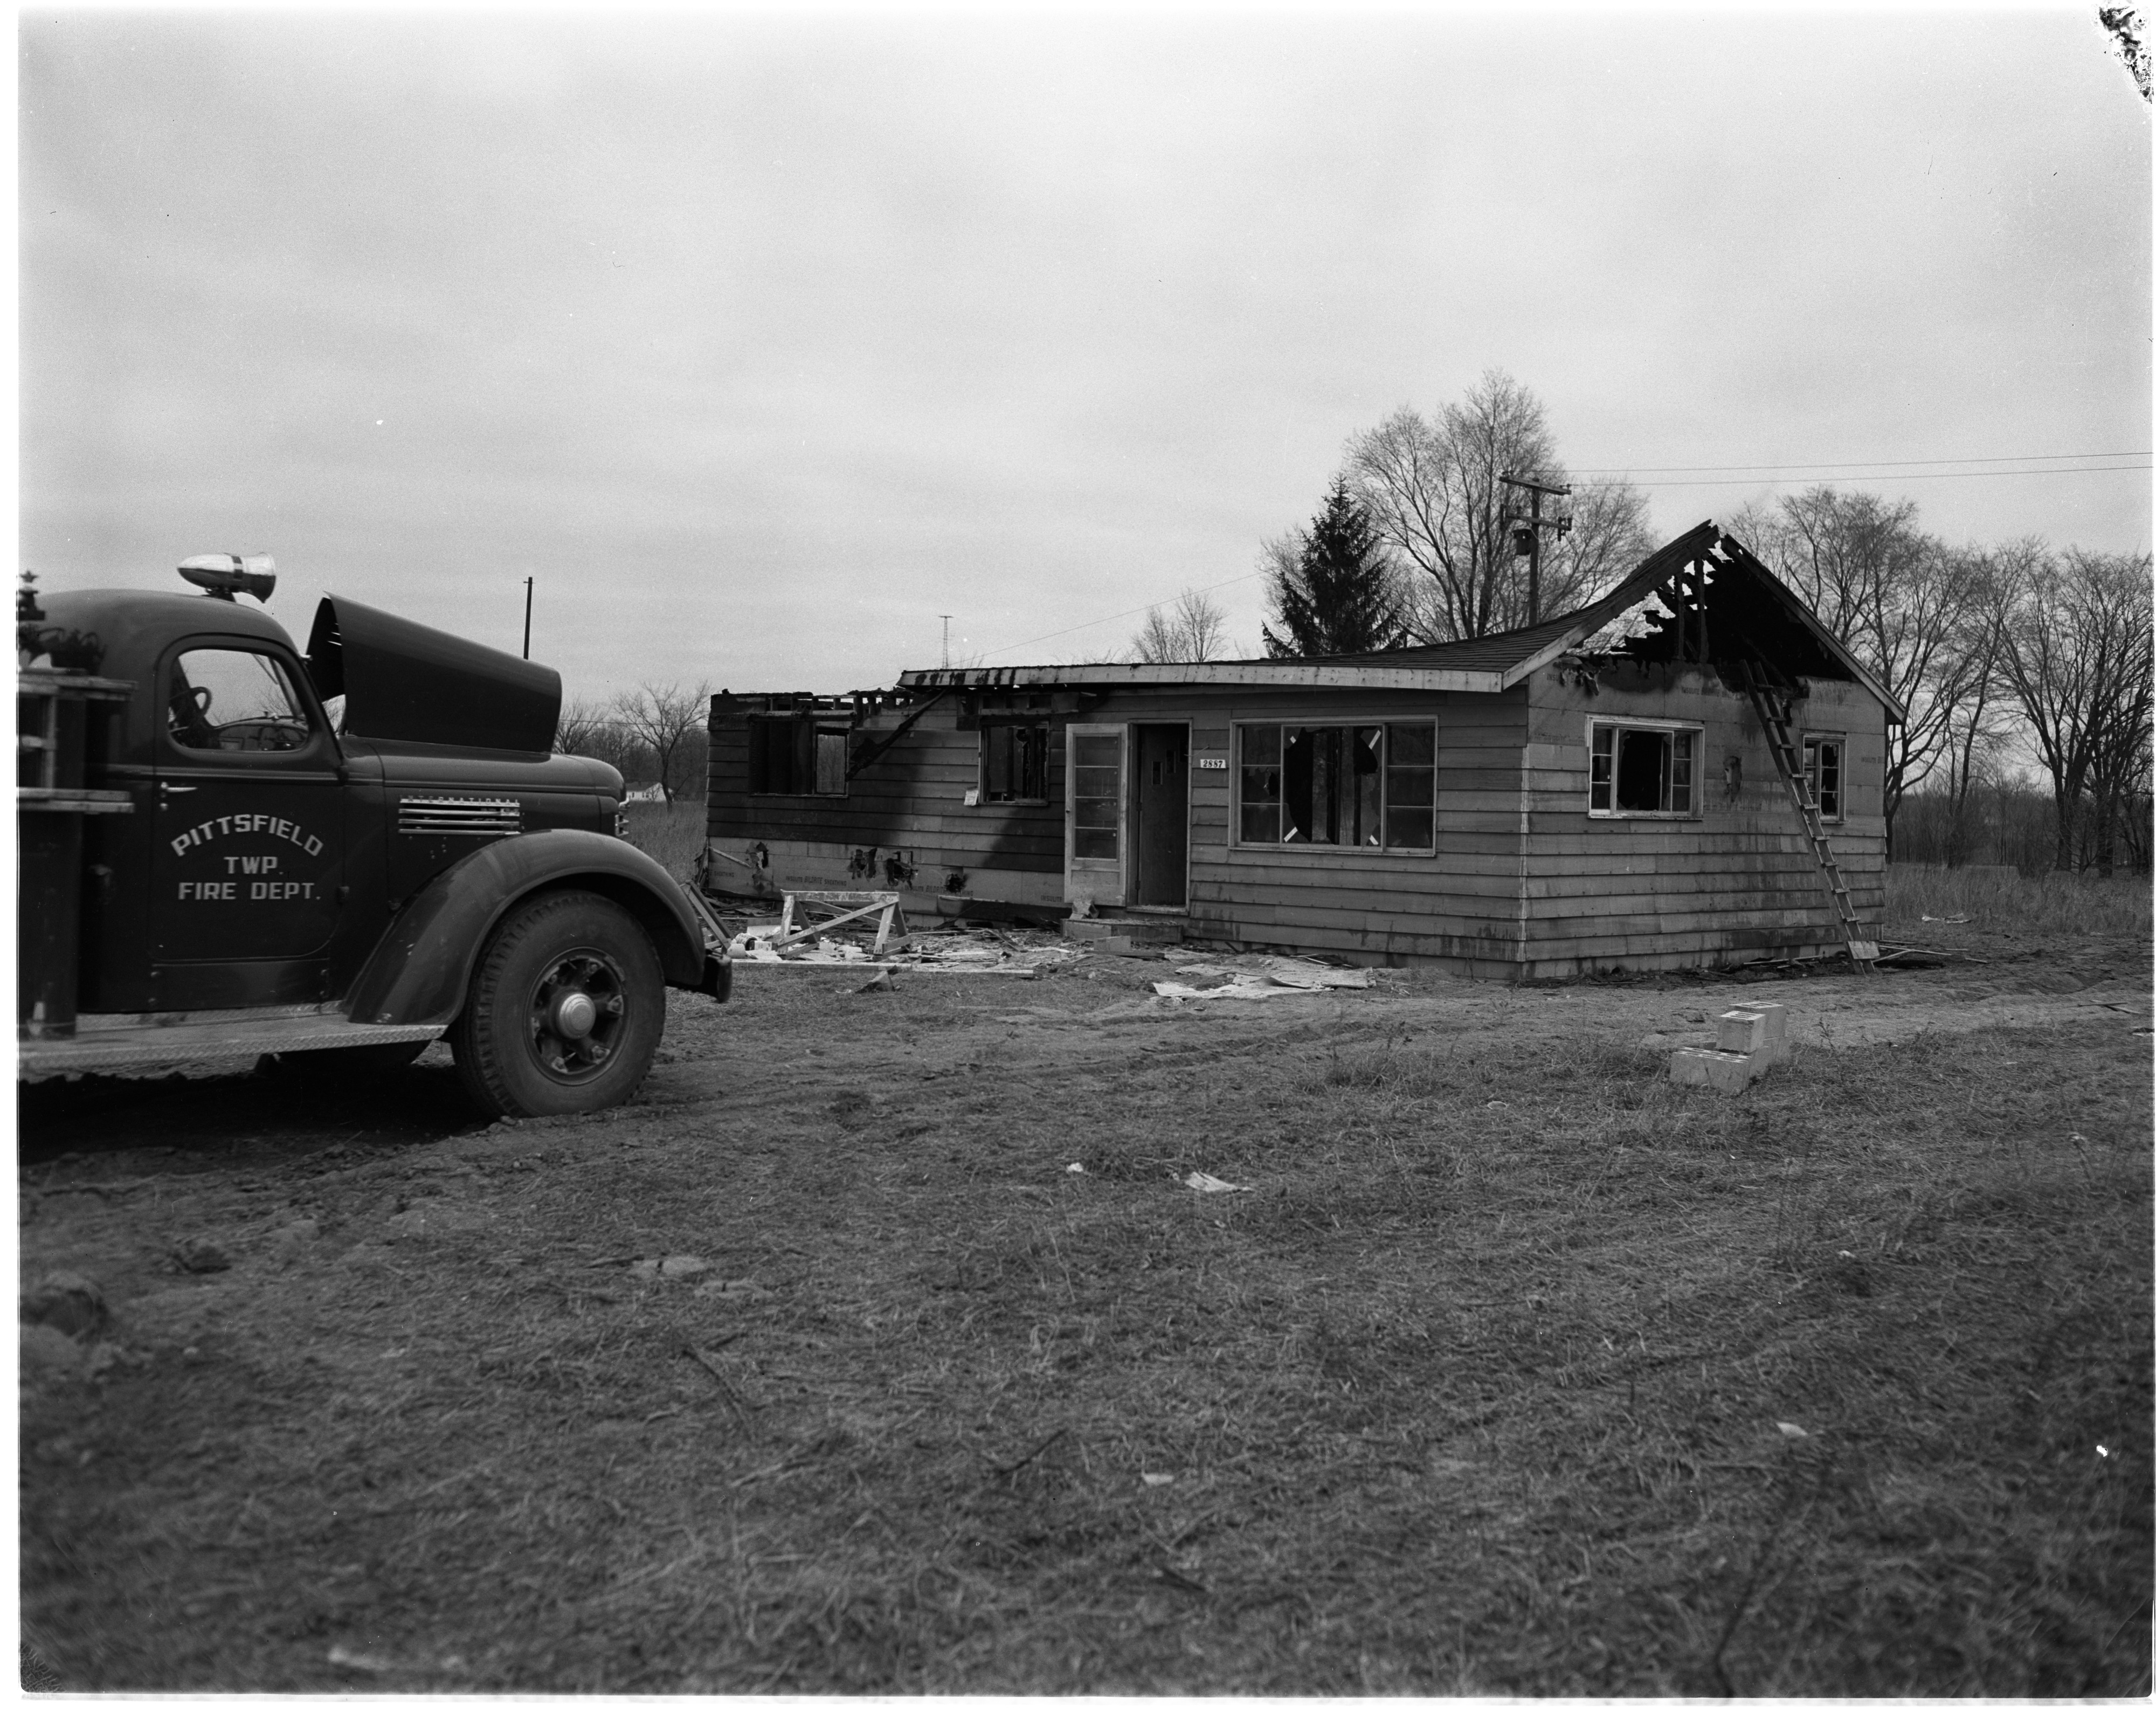 Aftermath of House Fire in Pittsfield, January 1955 image